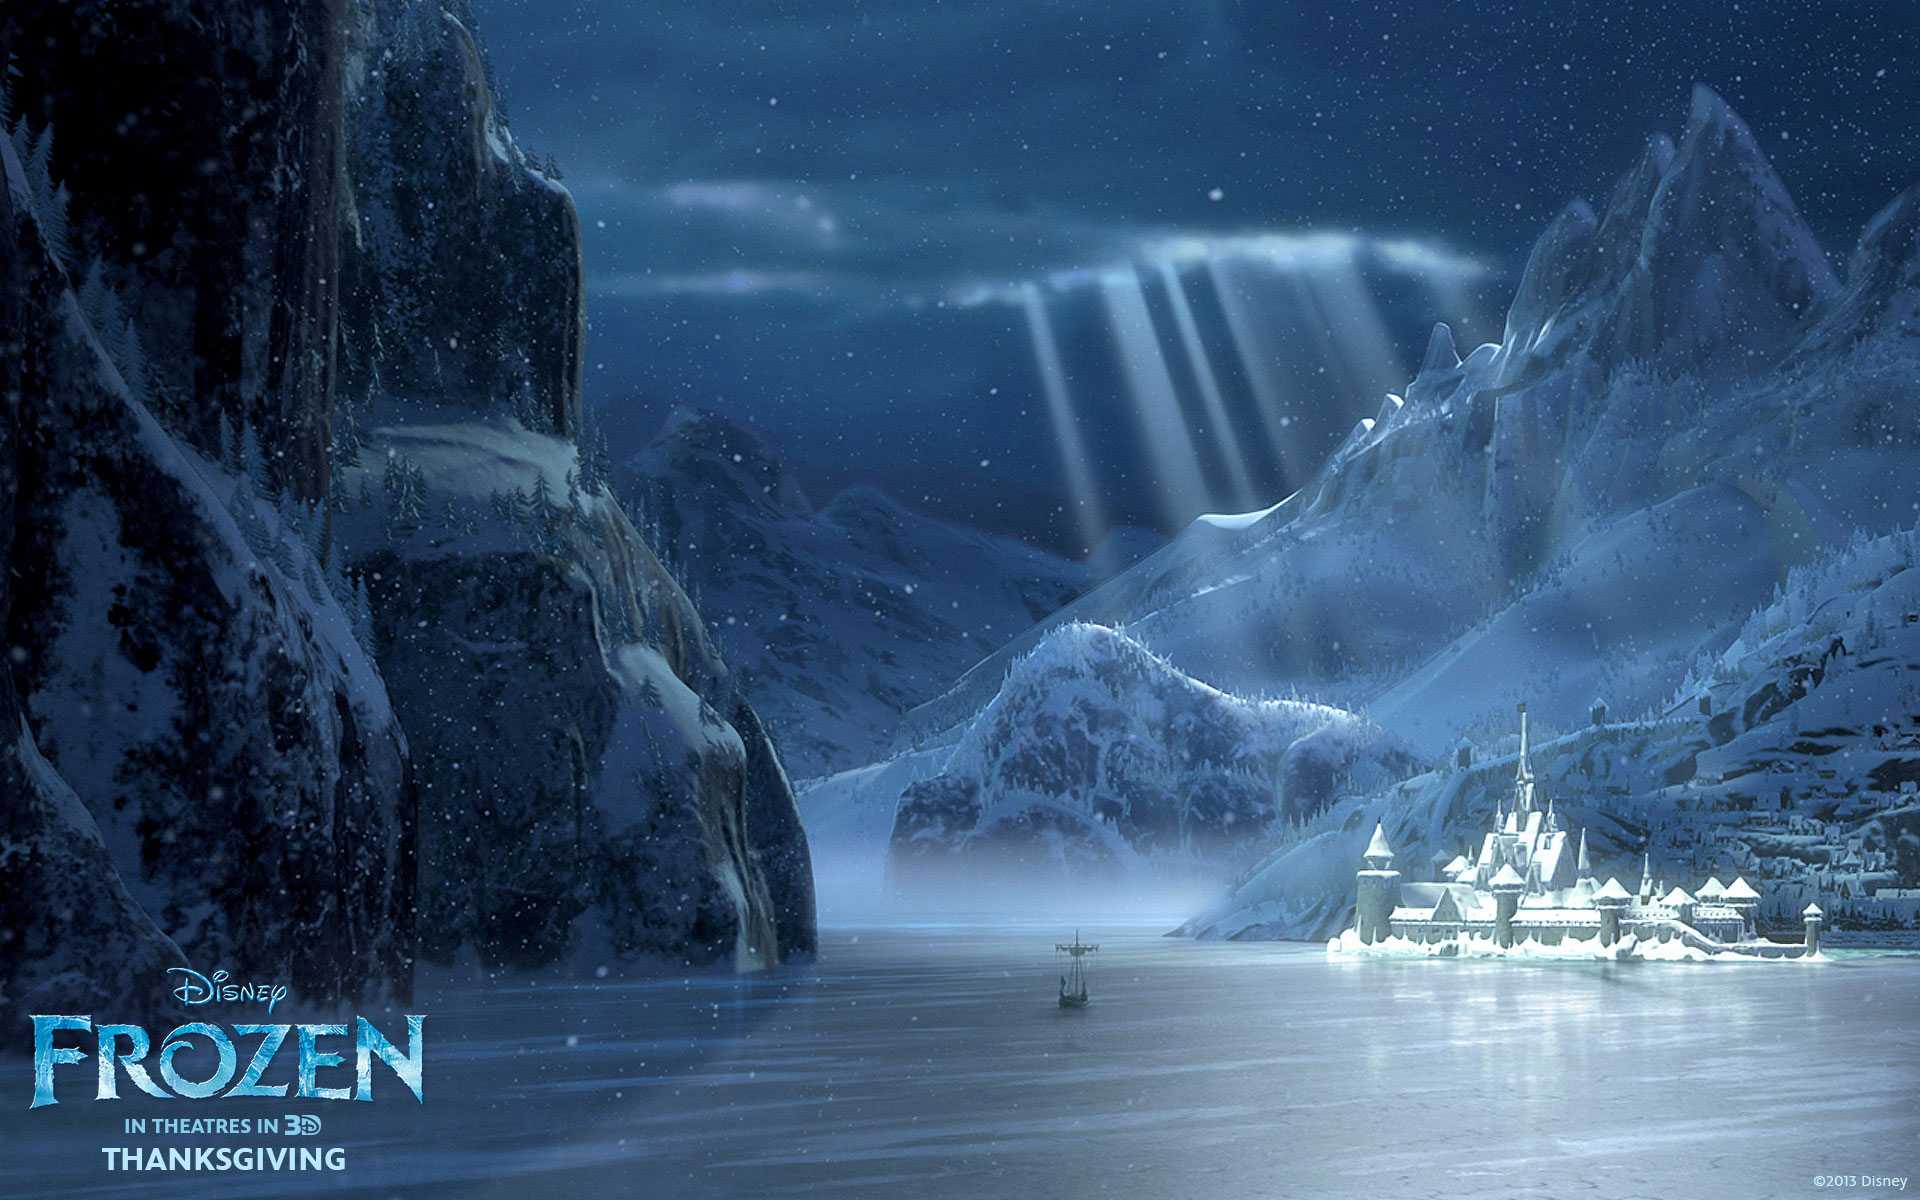 Winter Wallpaper For Facebook facebook movie frozen wallpapers covers timeline arendelle